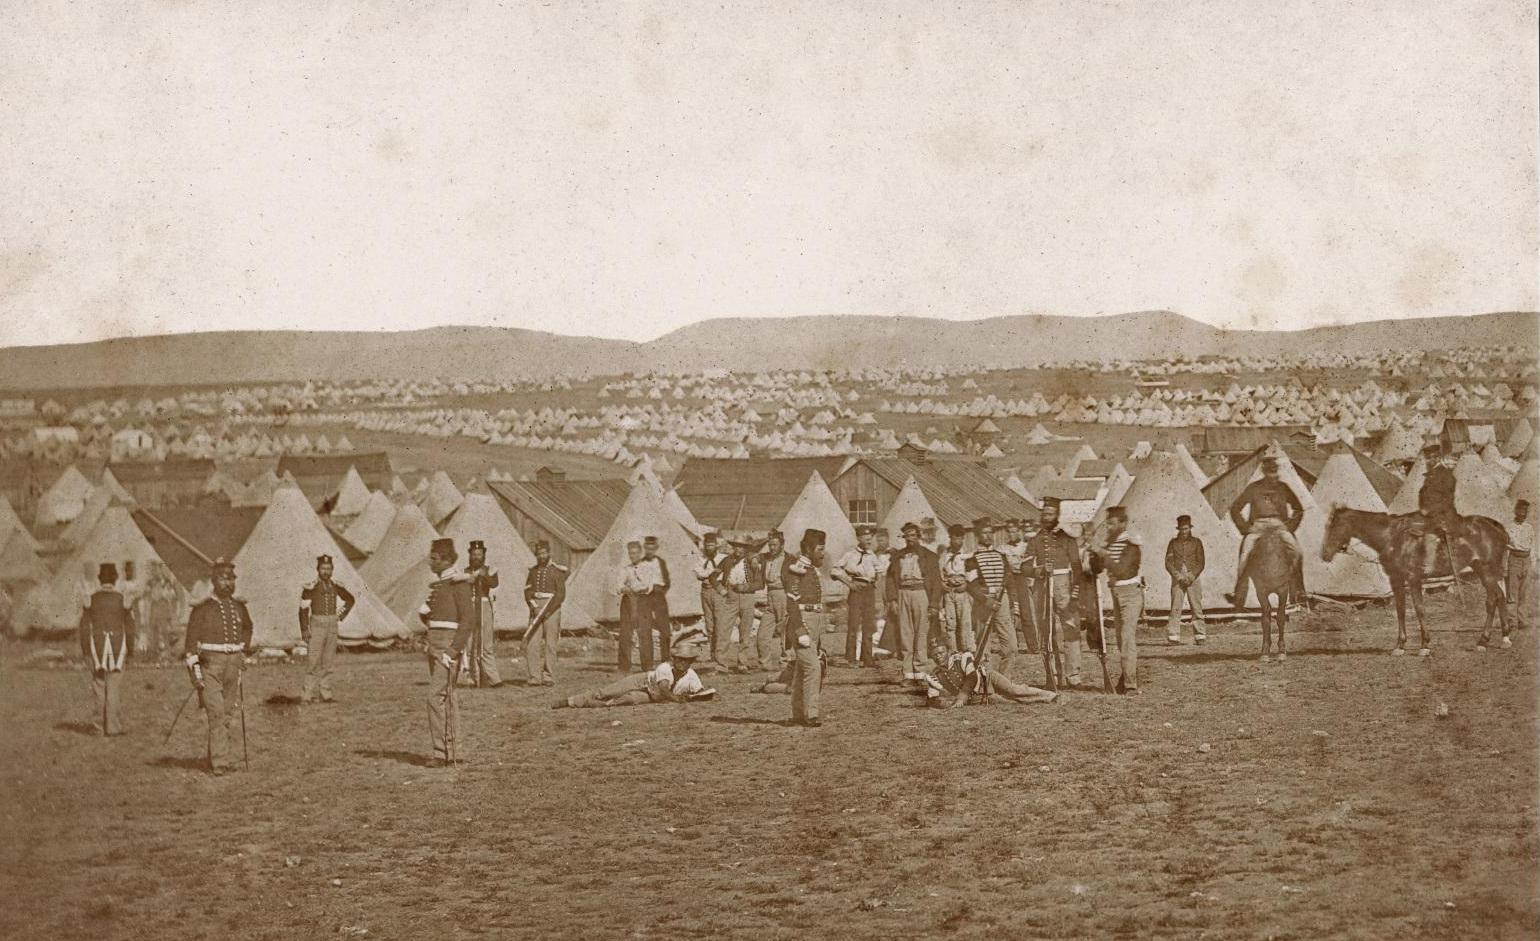 Camp of the 97th Regiment in front of Sevastopol [Ukraine], by James Robertson or Felice Beato, c. Sep 1855 (Ref: Ne C 10884/2/13)